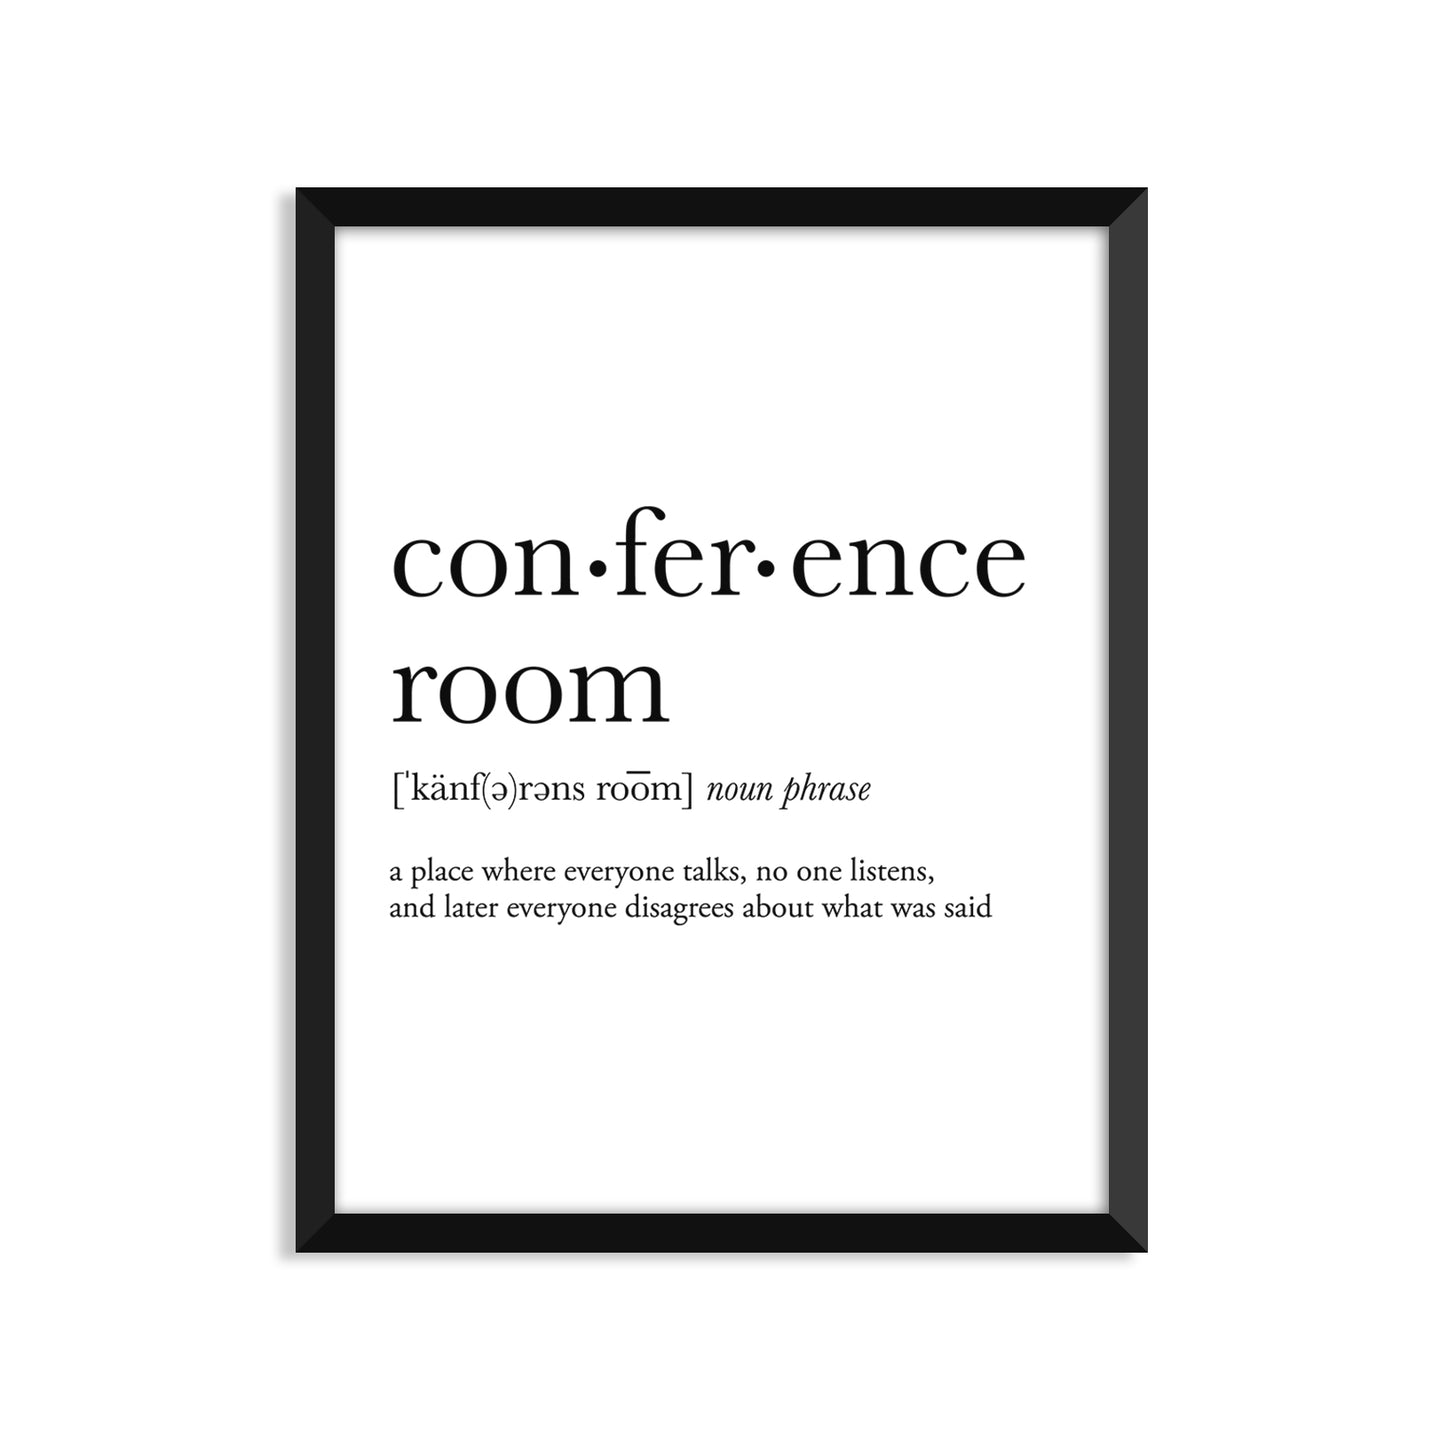 Conference Room definition art print or greeting card